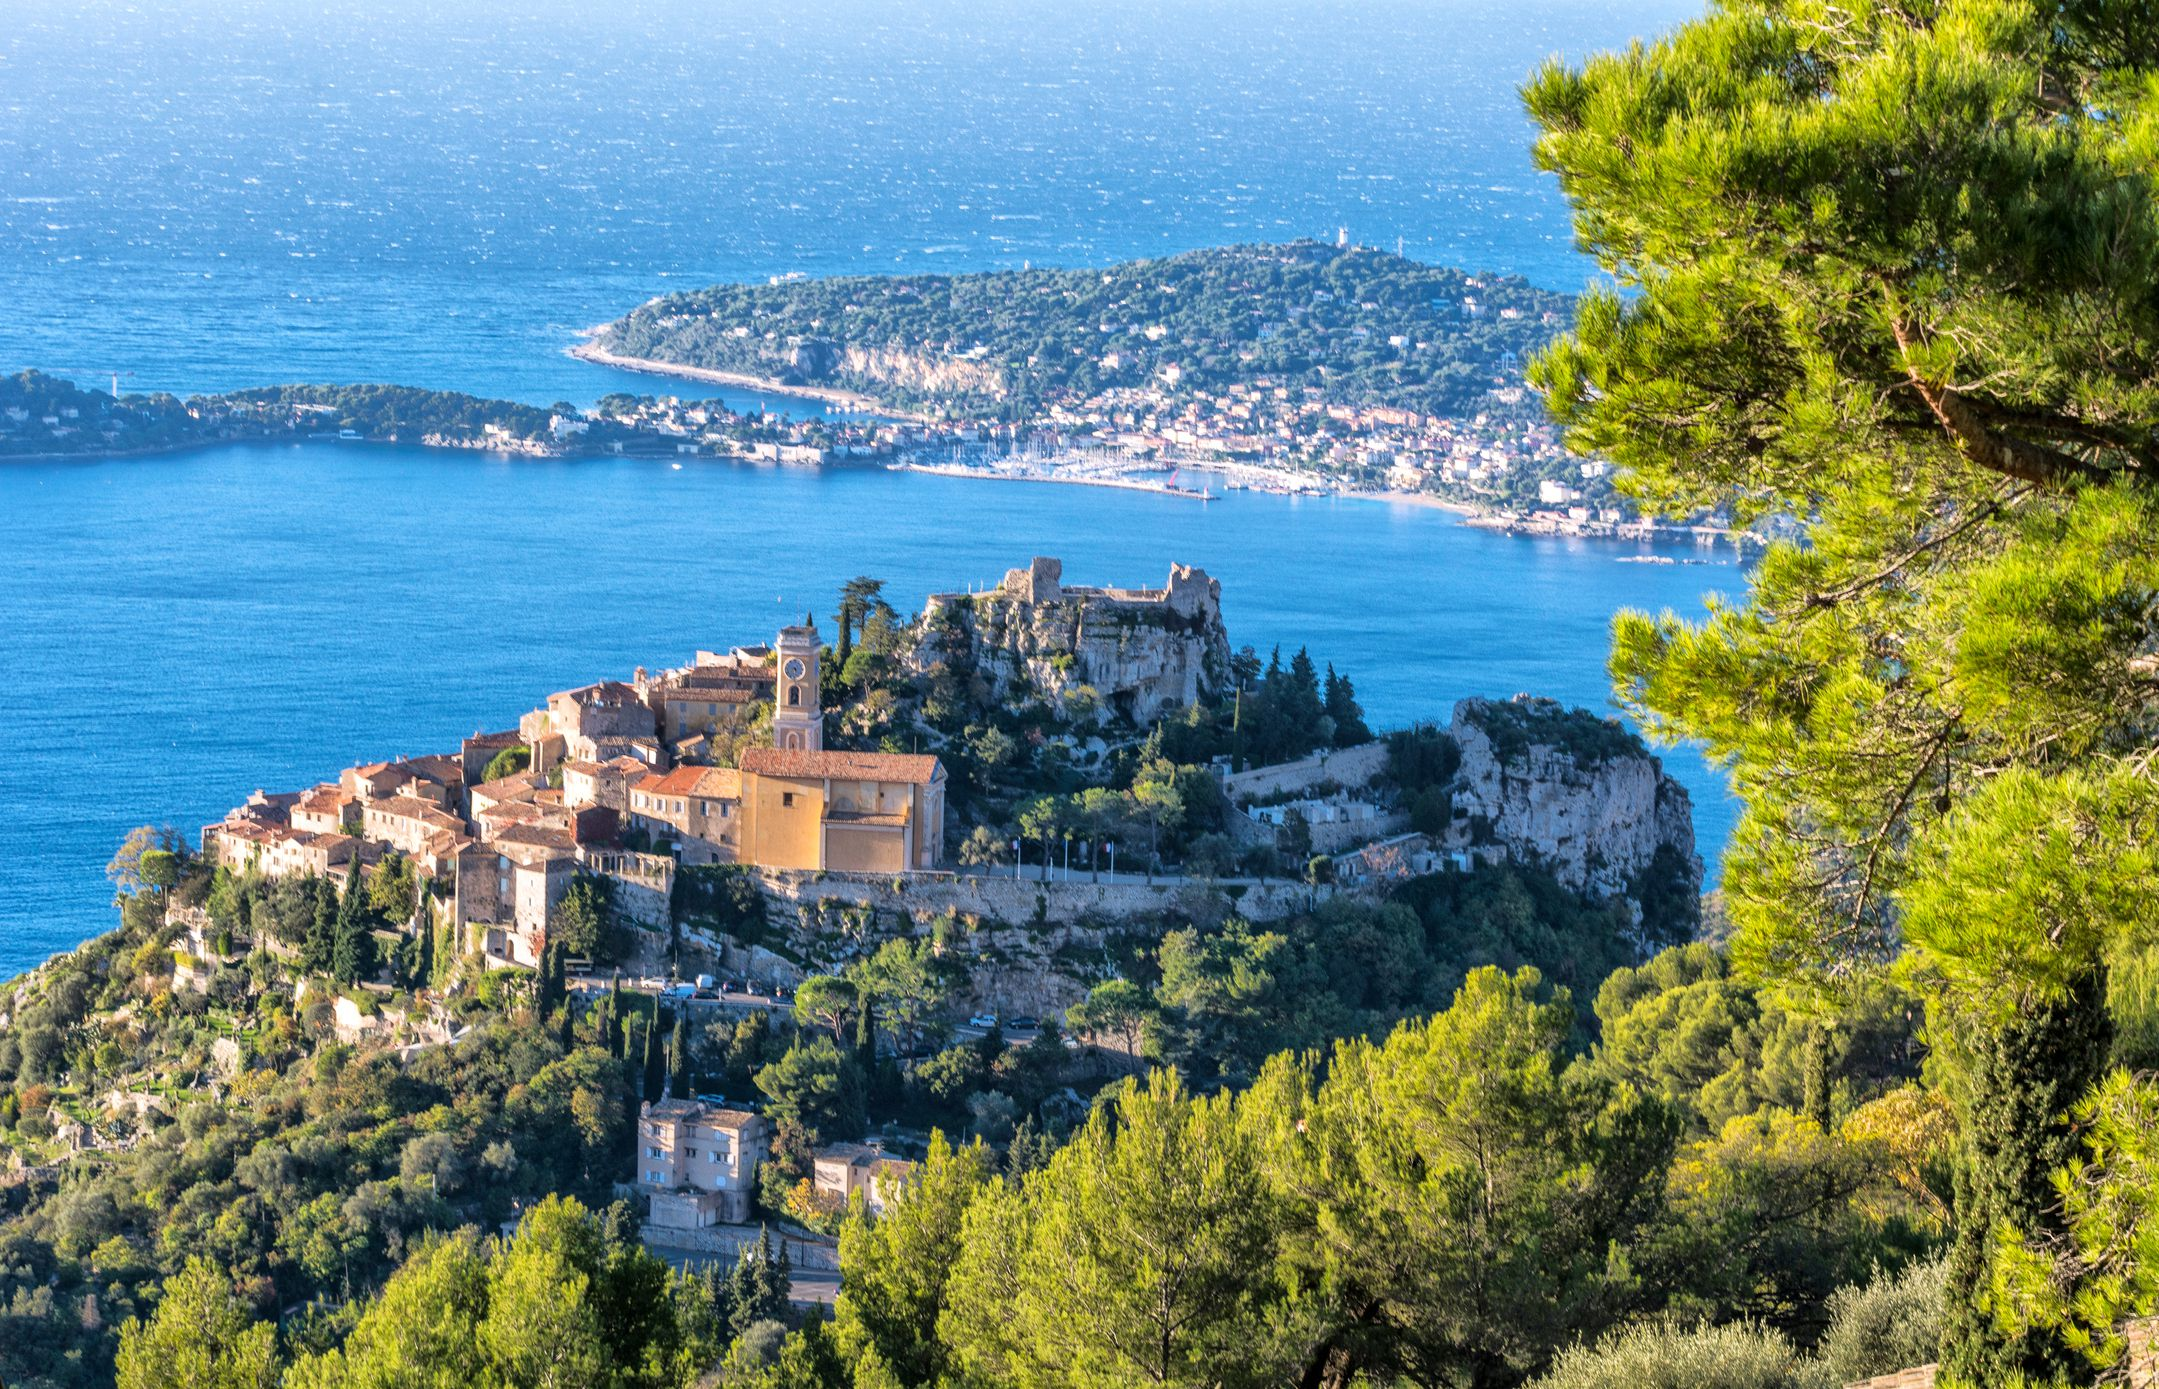 Visiting The Me Val Village Of Eze On The French Riviera